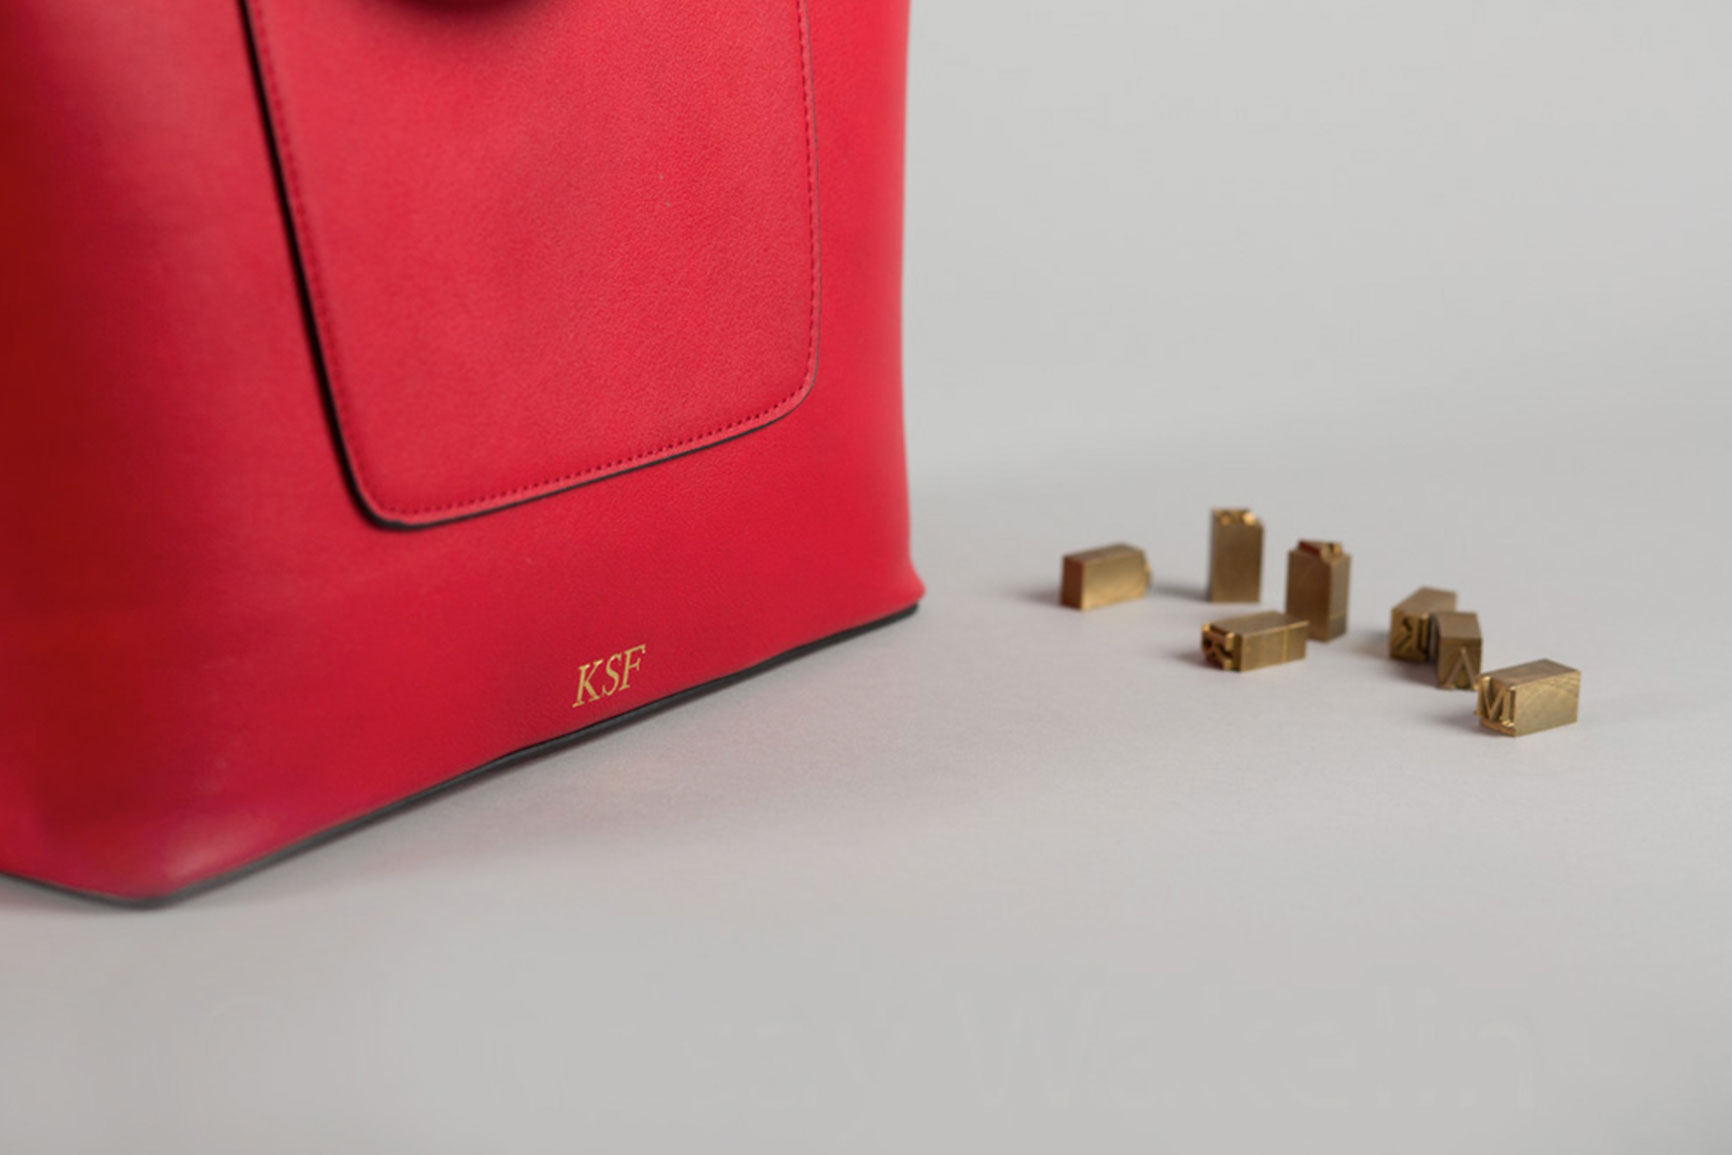 red personalised hot foil embossed handbag beside letterpress stamps